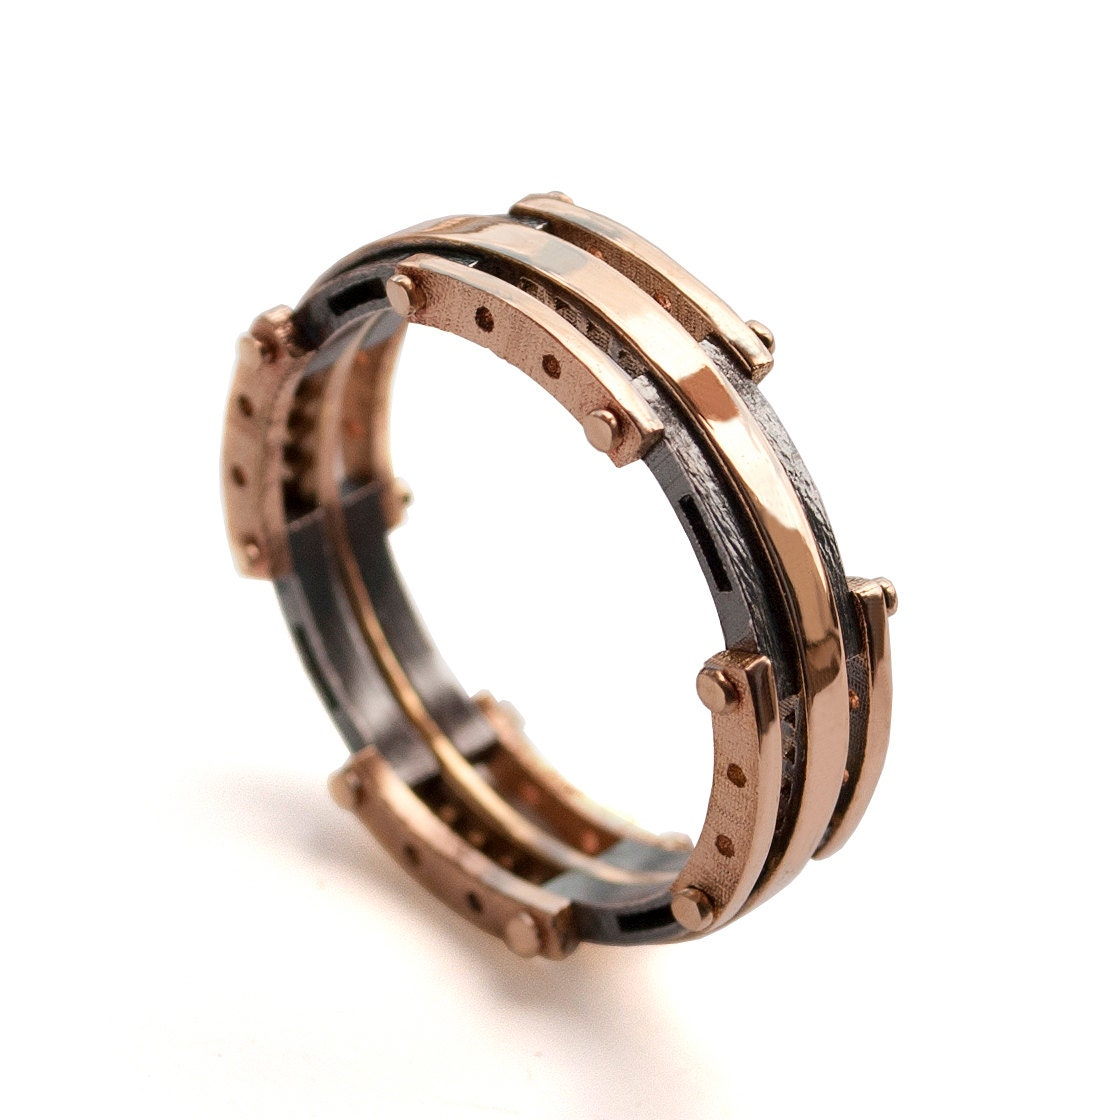 Gold Wedding Band Men 39 S 18K Rose Gold And Oxidized Silver Wedding